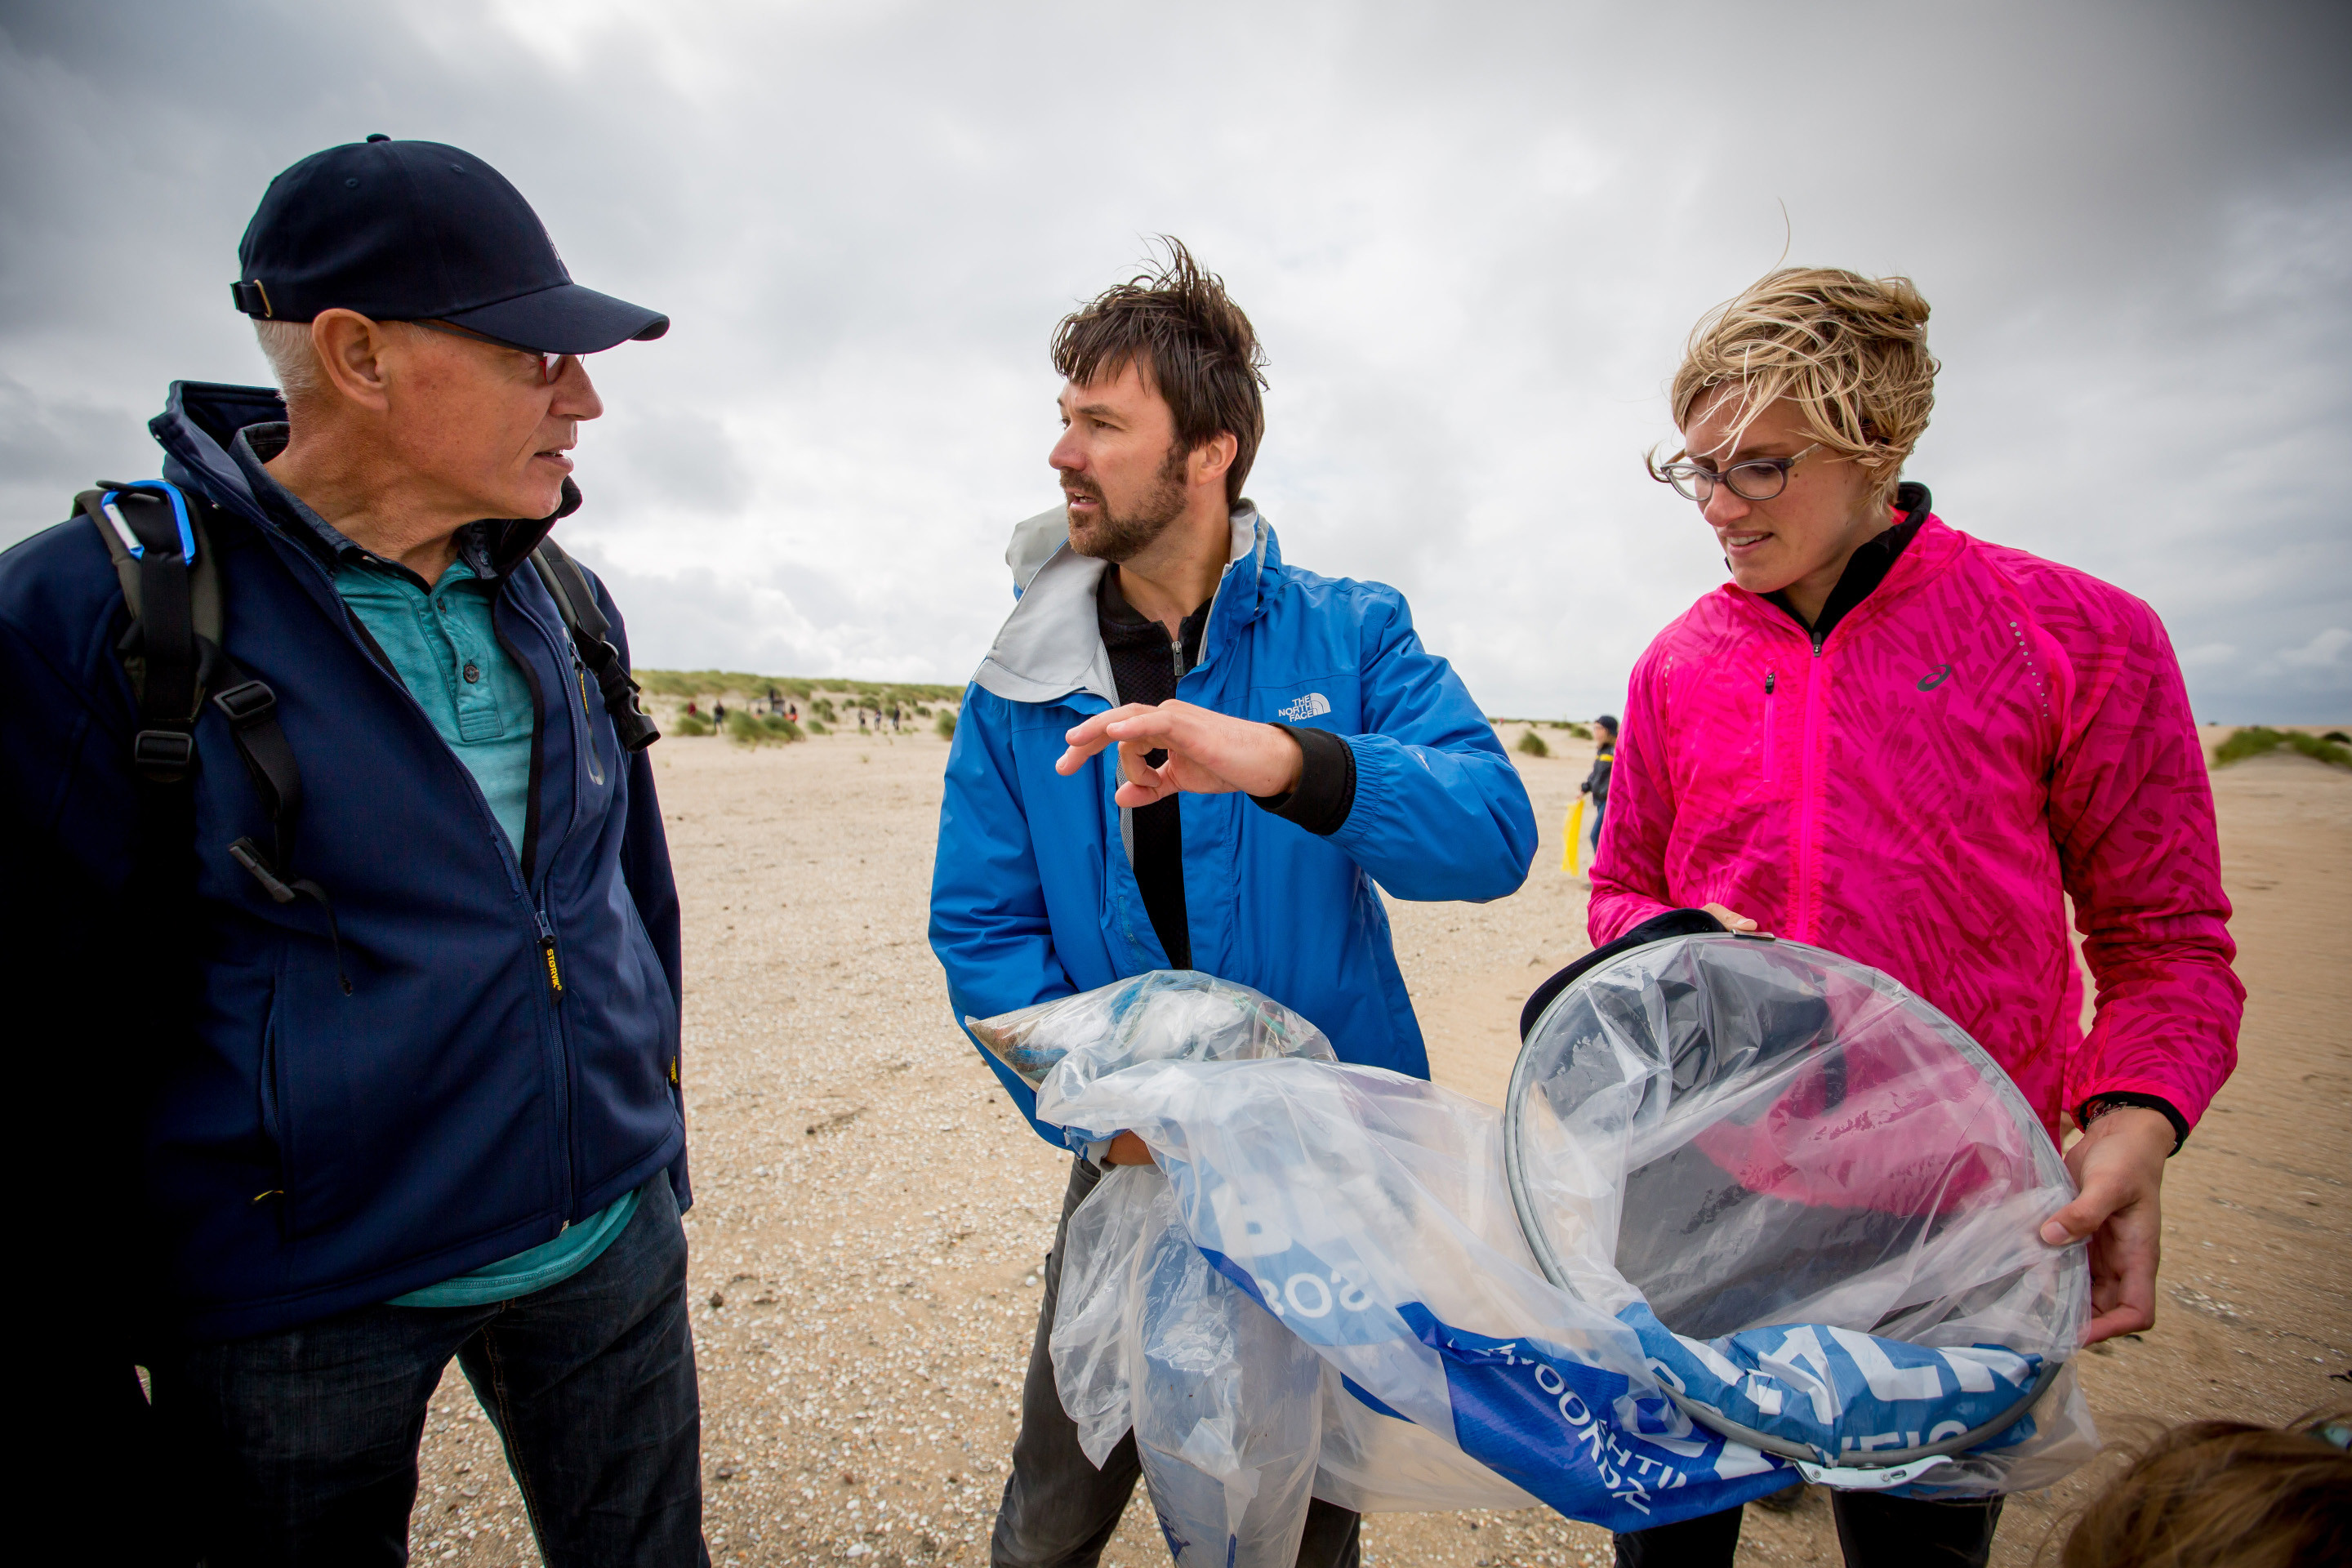 North Sea Foundation director Floris van Hest (middle) during one of the stages